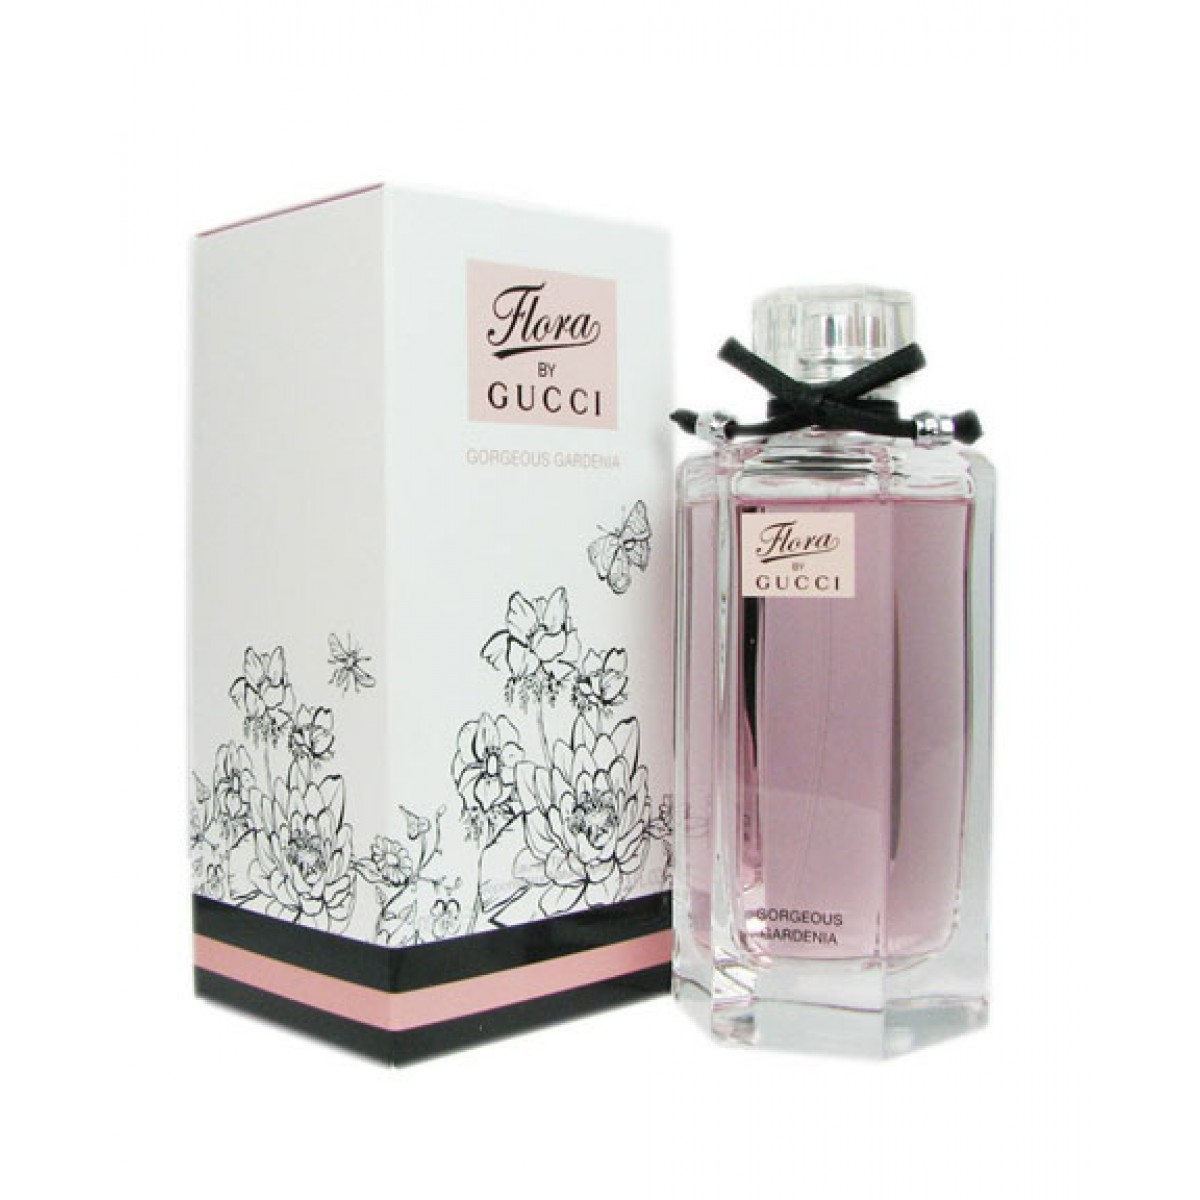 a6d944d2a1e Gucci Gorgeous Gardenia Eau De Toilette Price in Pakistan